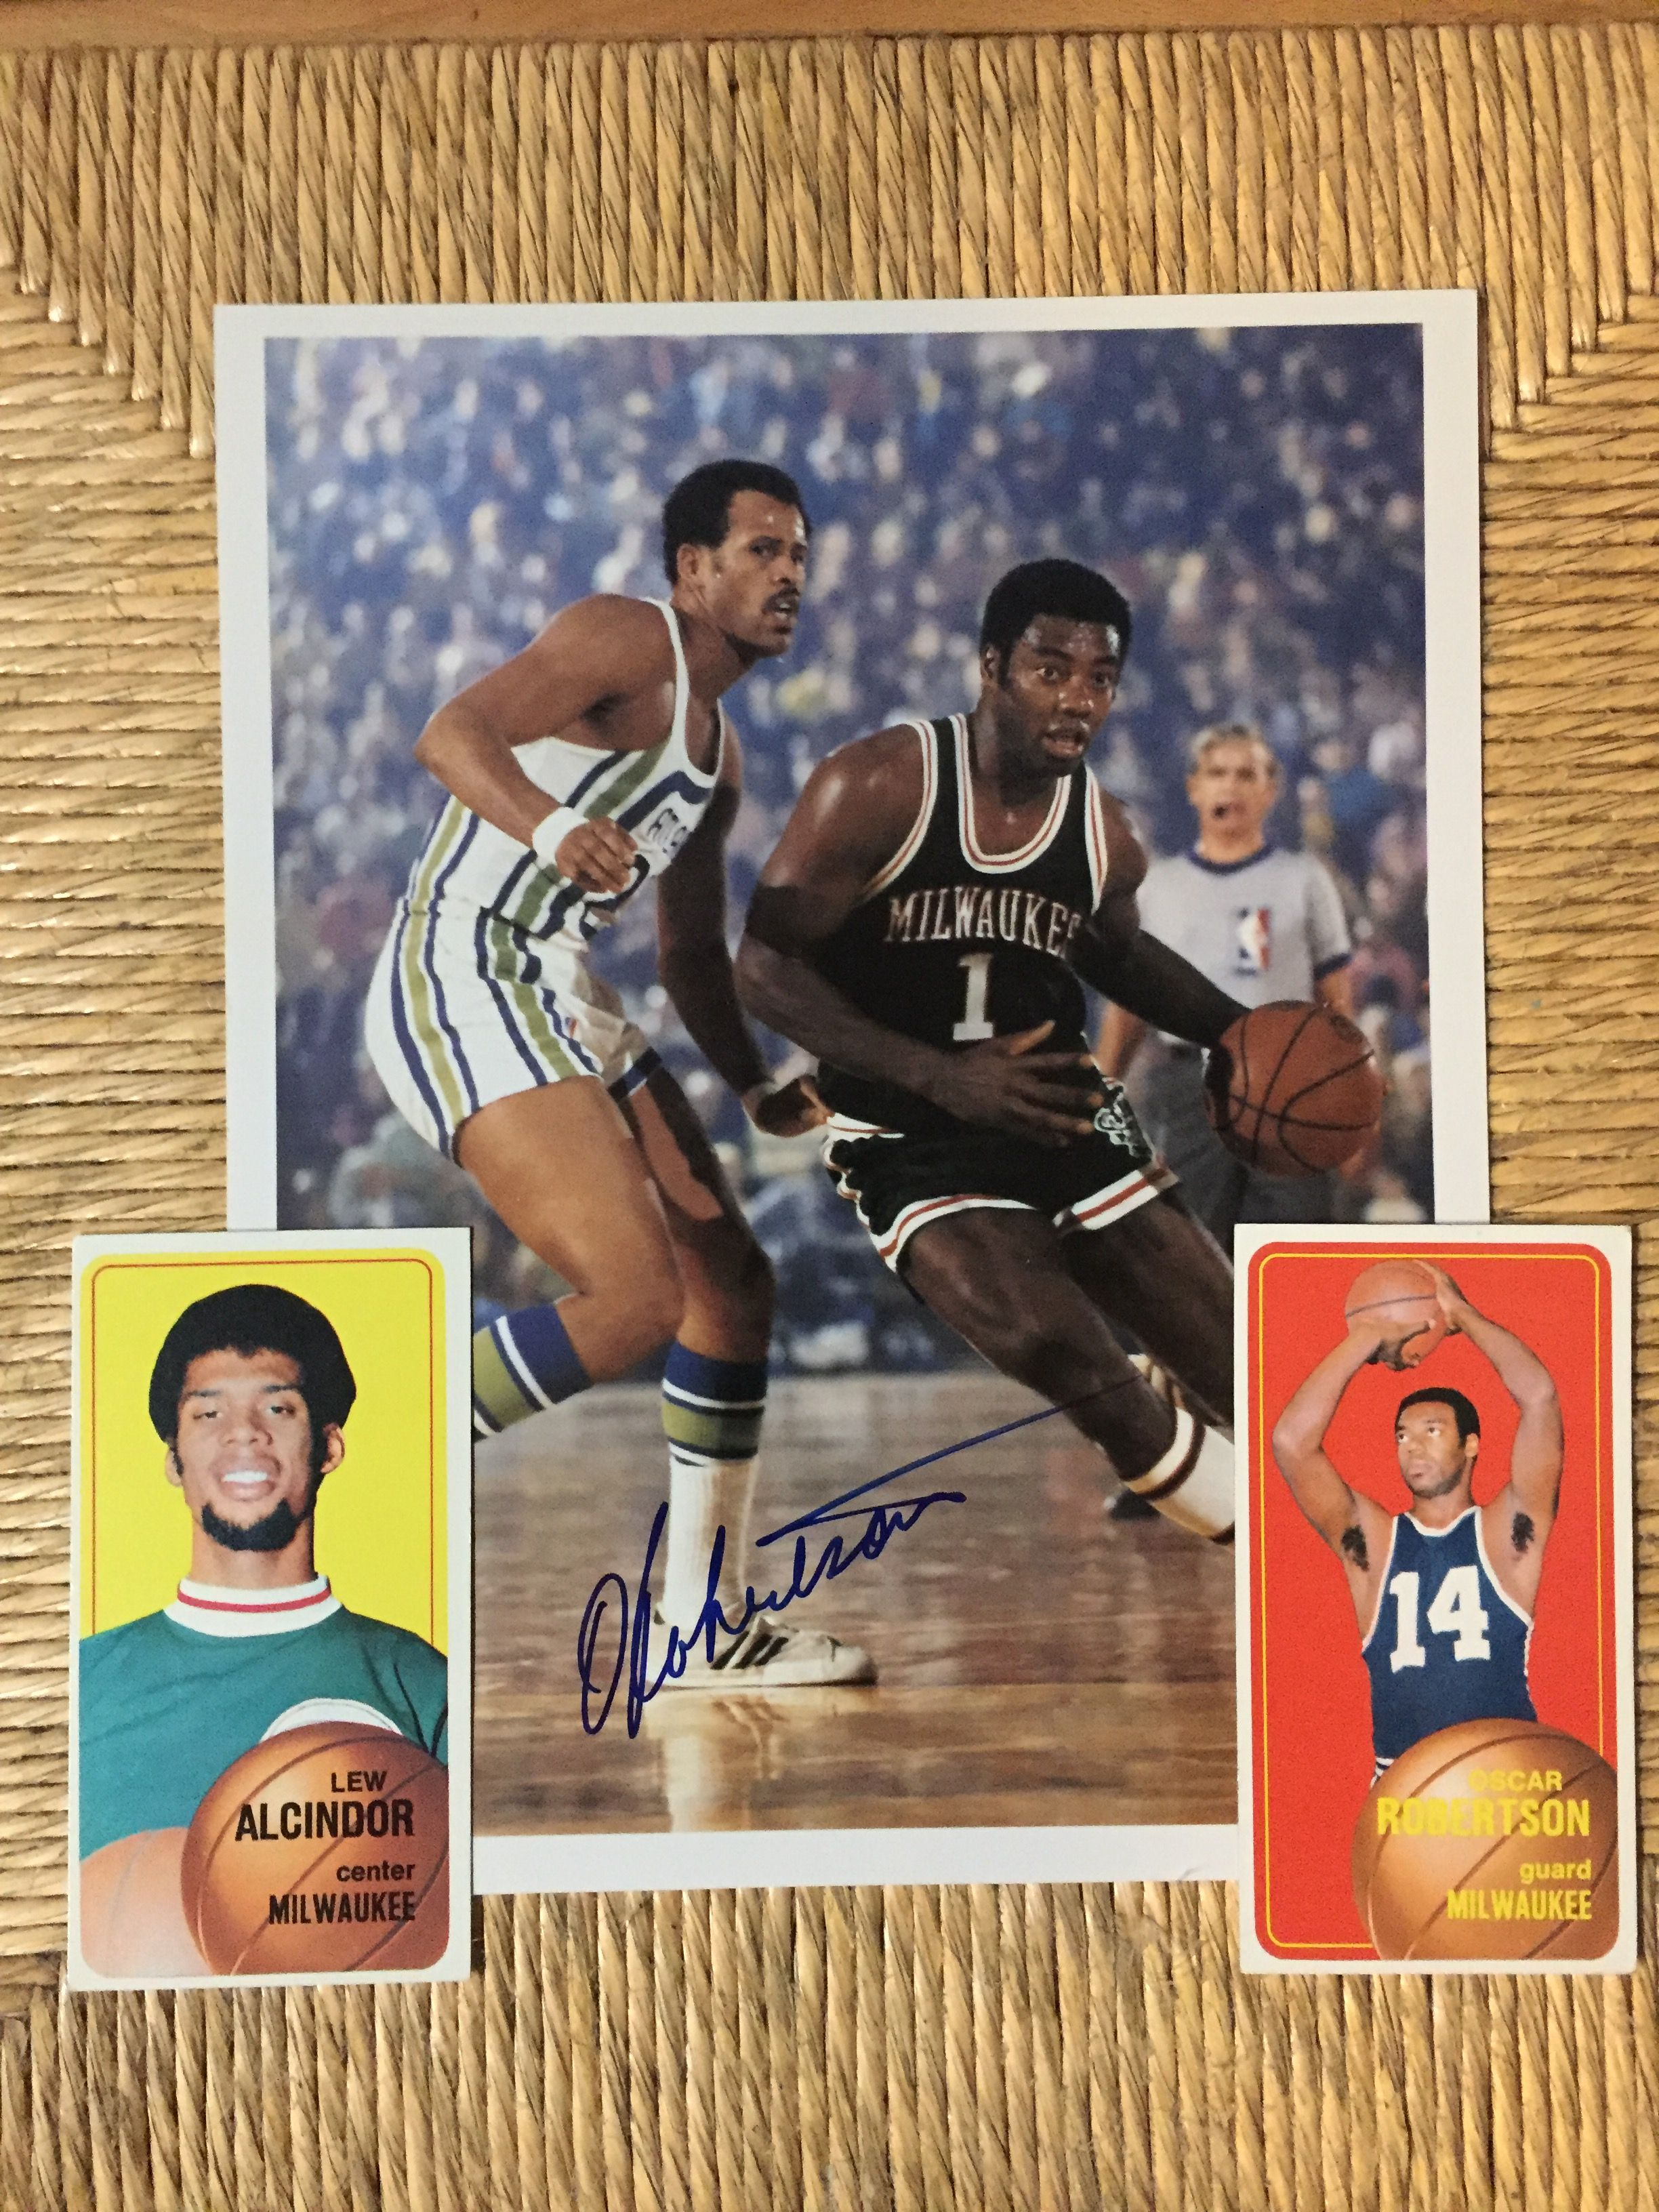 Milwaukee Bucks 1971 Nba Champions Topps Cards Lew Alcindor With